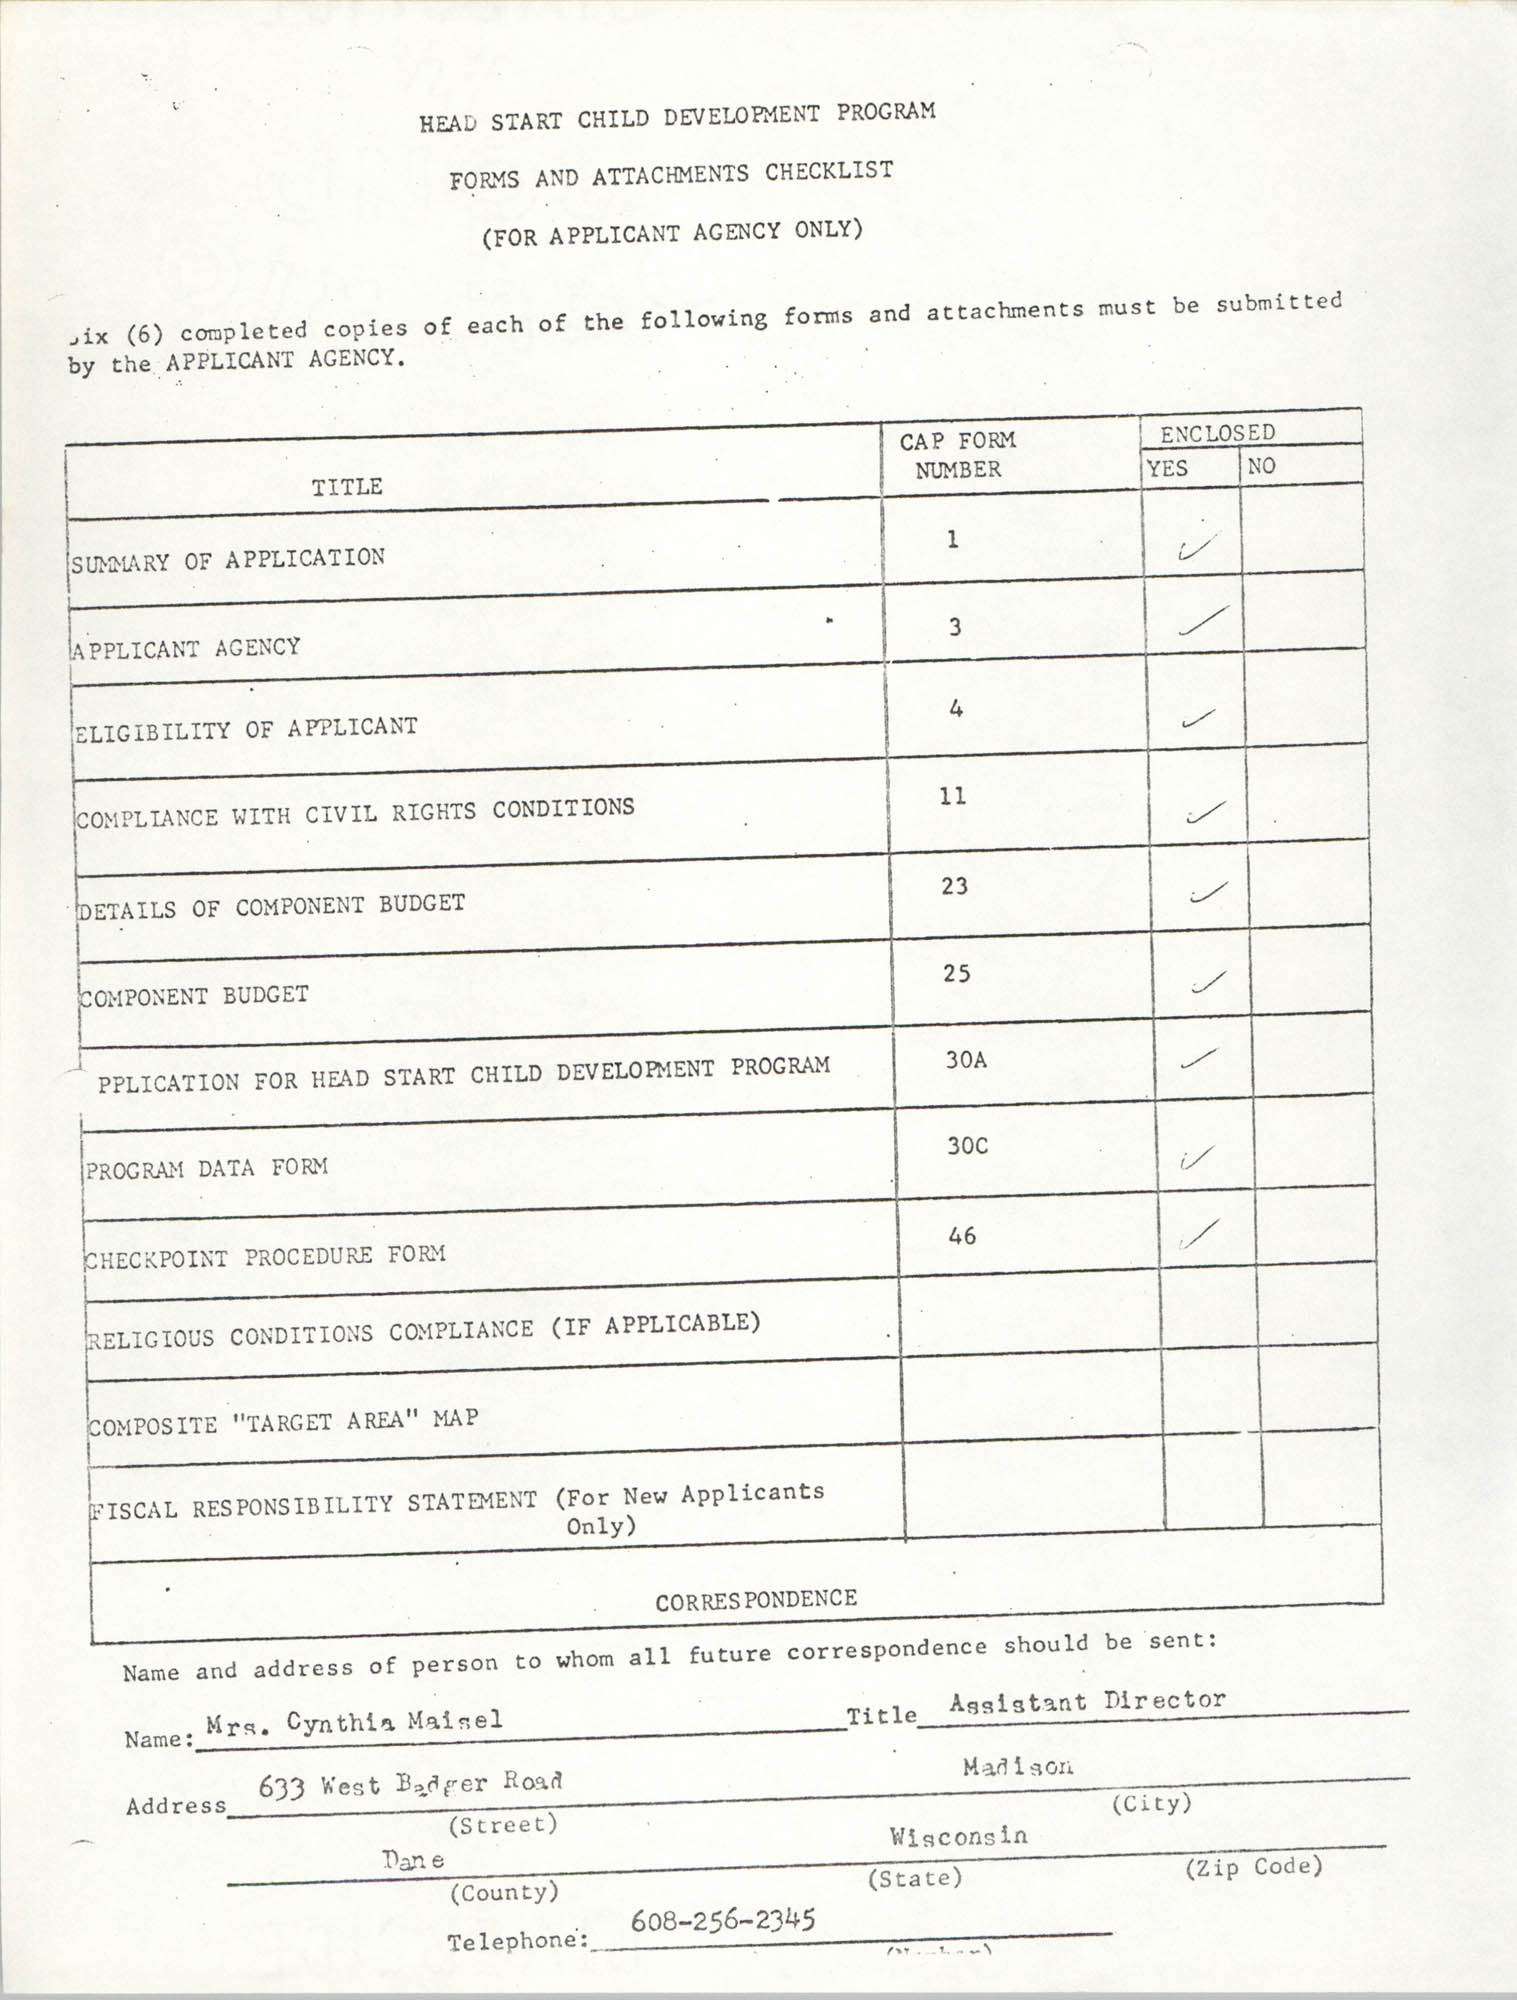 Forms and Attachments Checklist